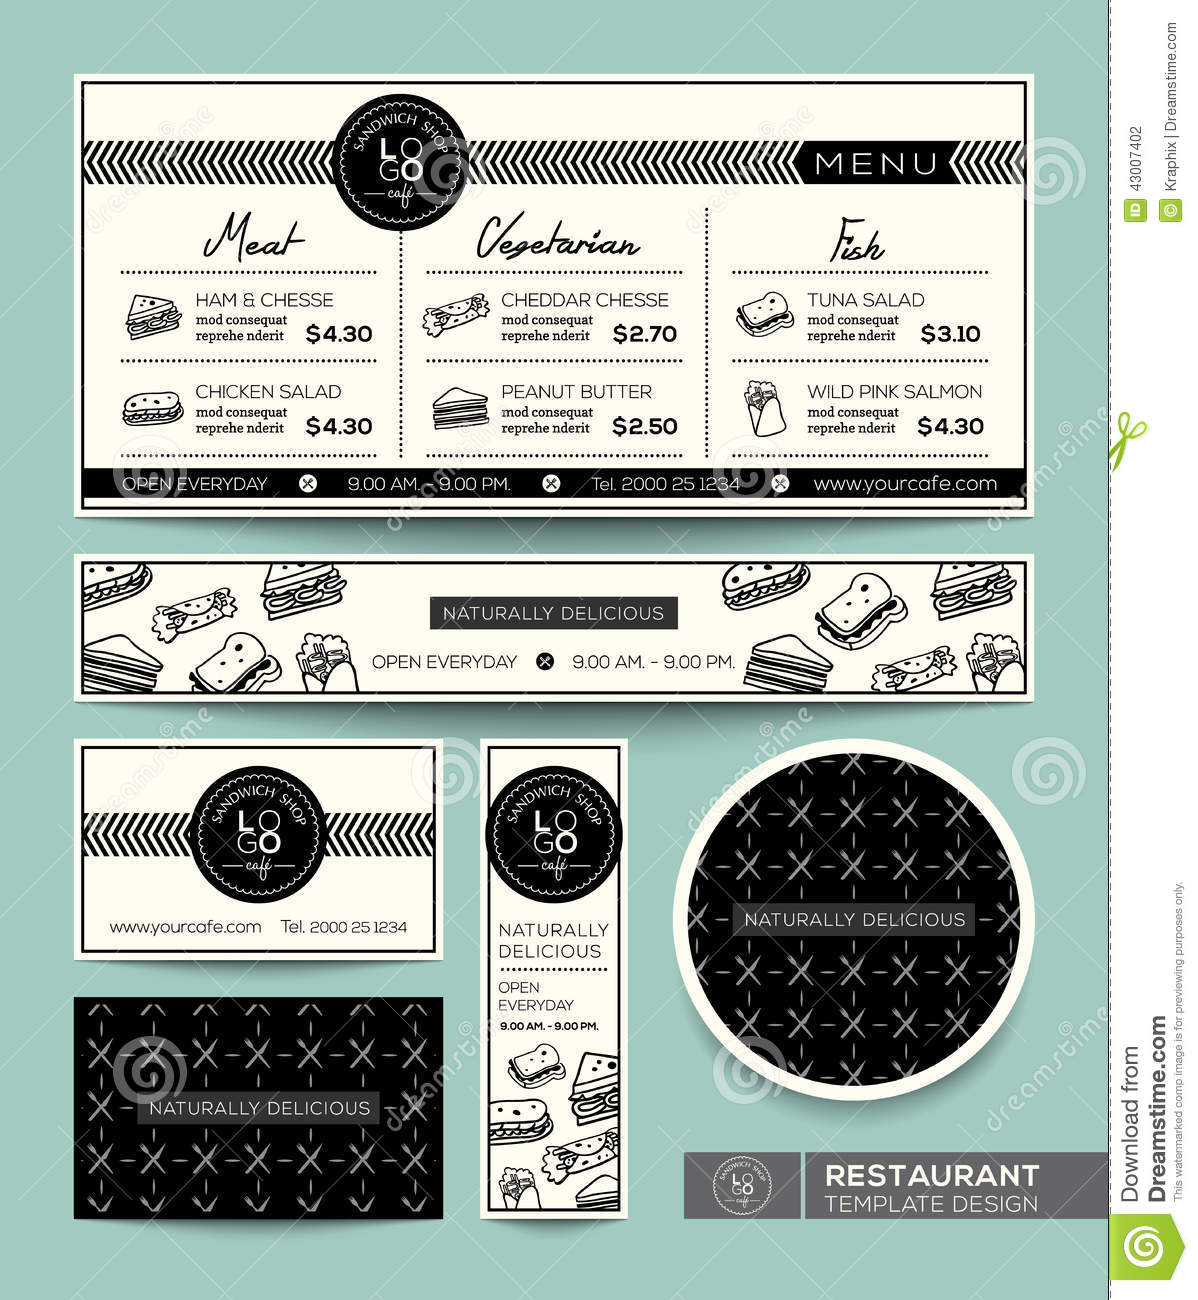 sandwich shop menu template - sandwich set menu restaurant graphic design template stock